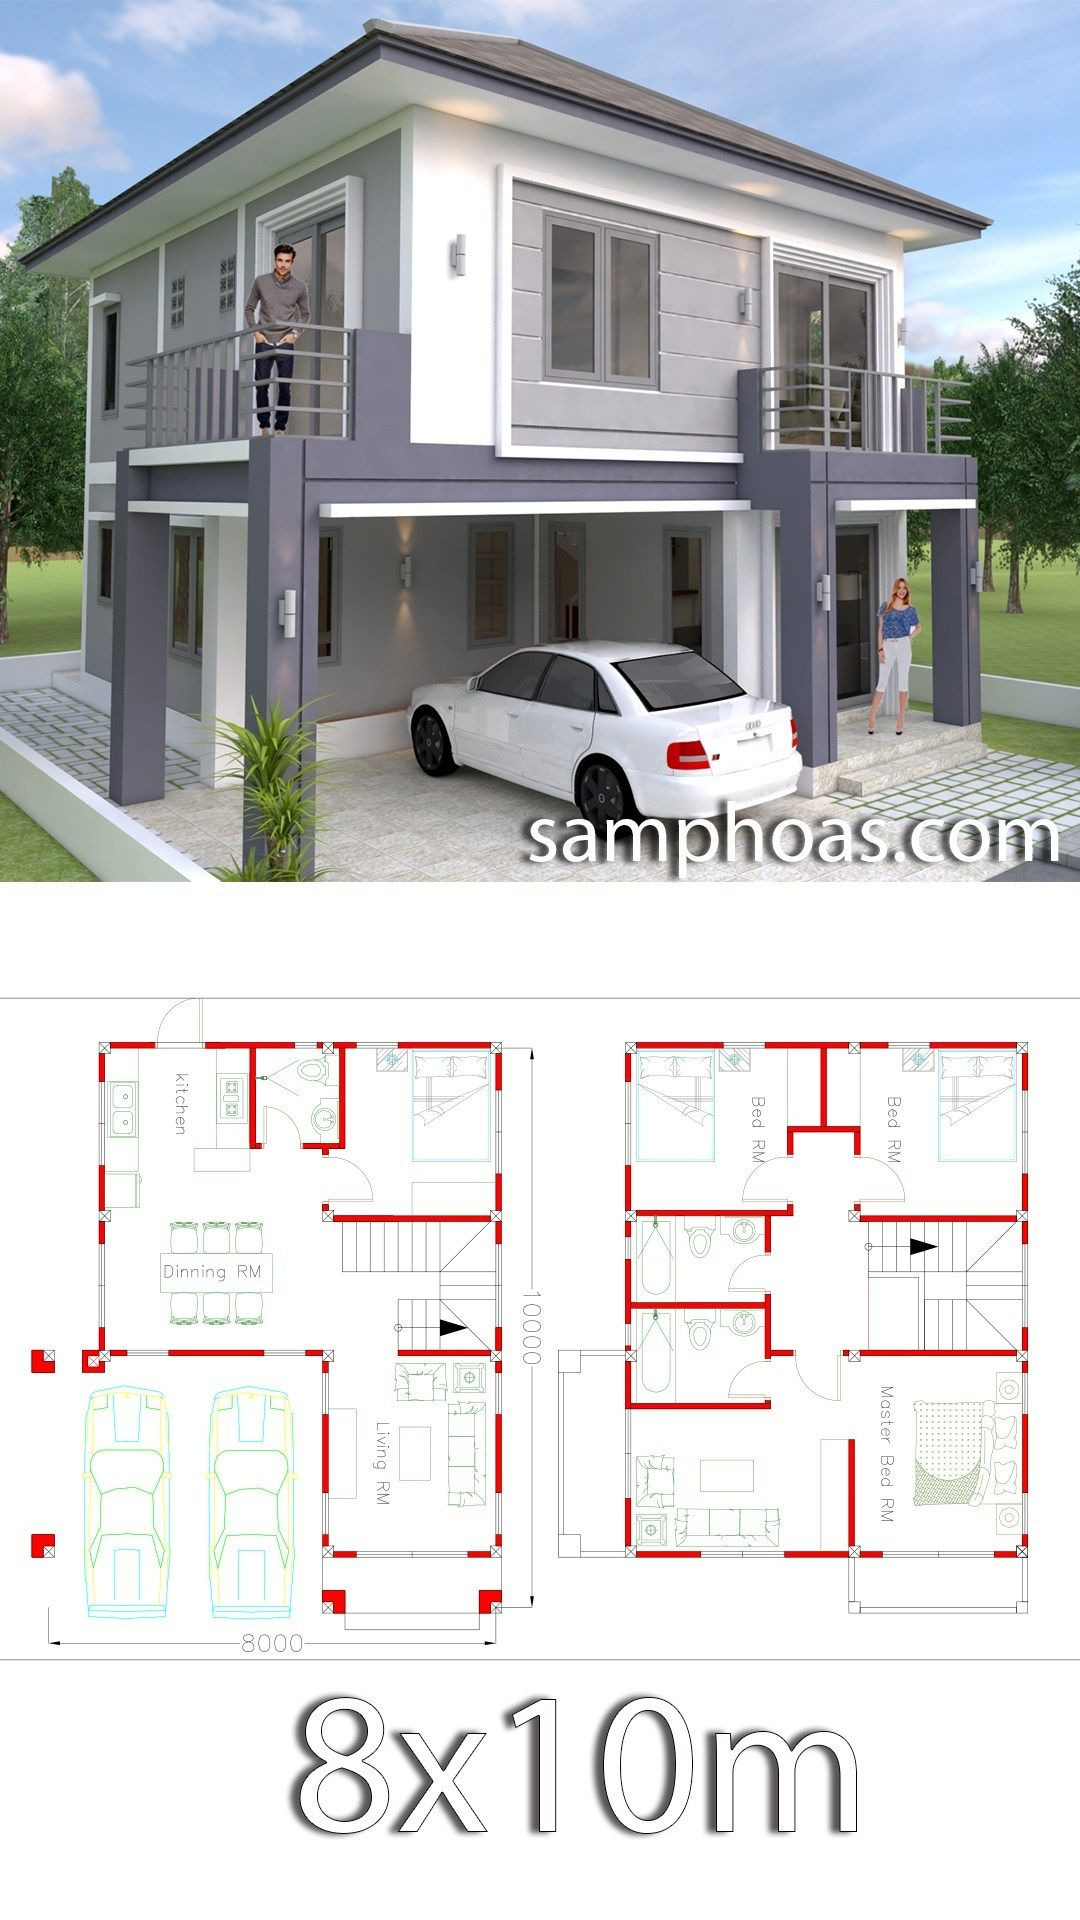 4 Bedroom Modern House Plans Awesome 4 Bedrooms Home Design Plan 8x10m